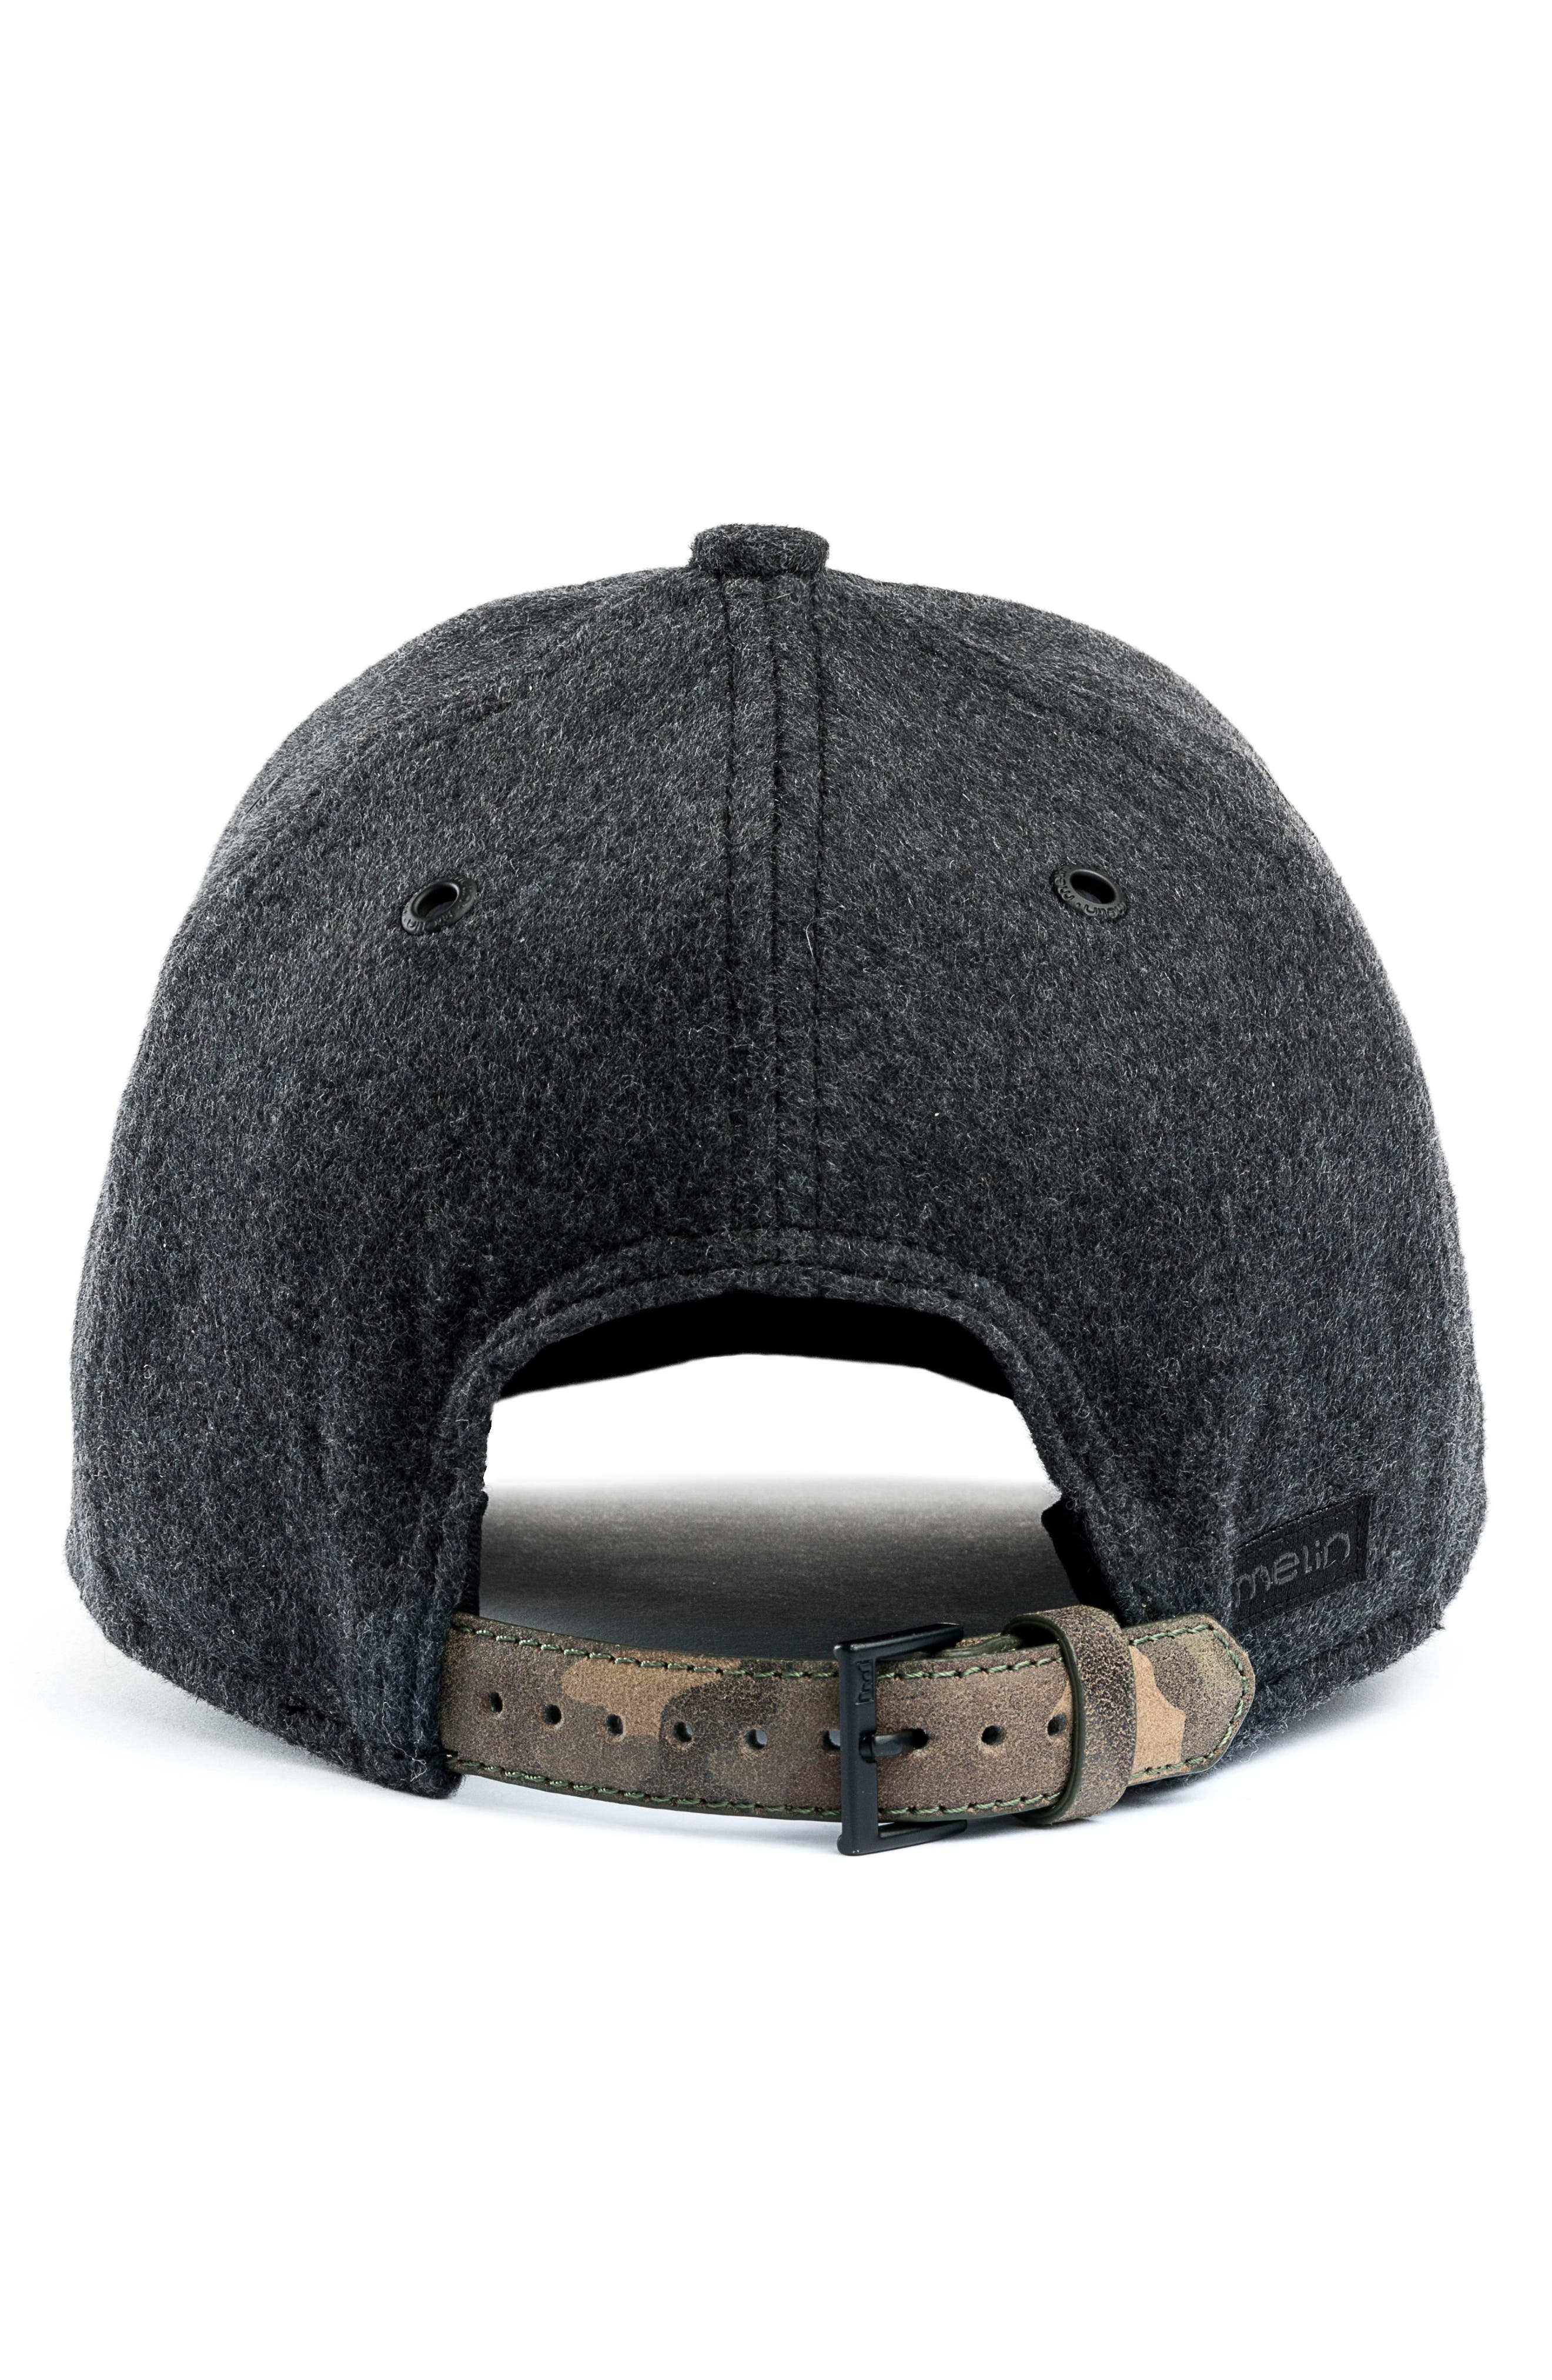 Maverick Ball Cap,                             Alternate thumbnail 2, color,                             Dark Charcoal